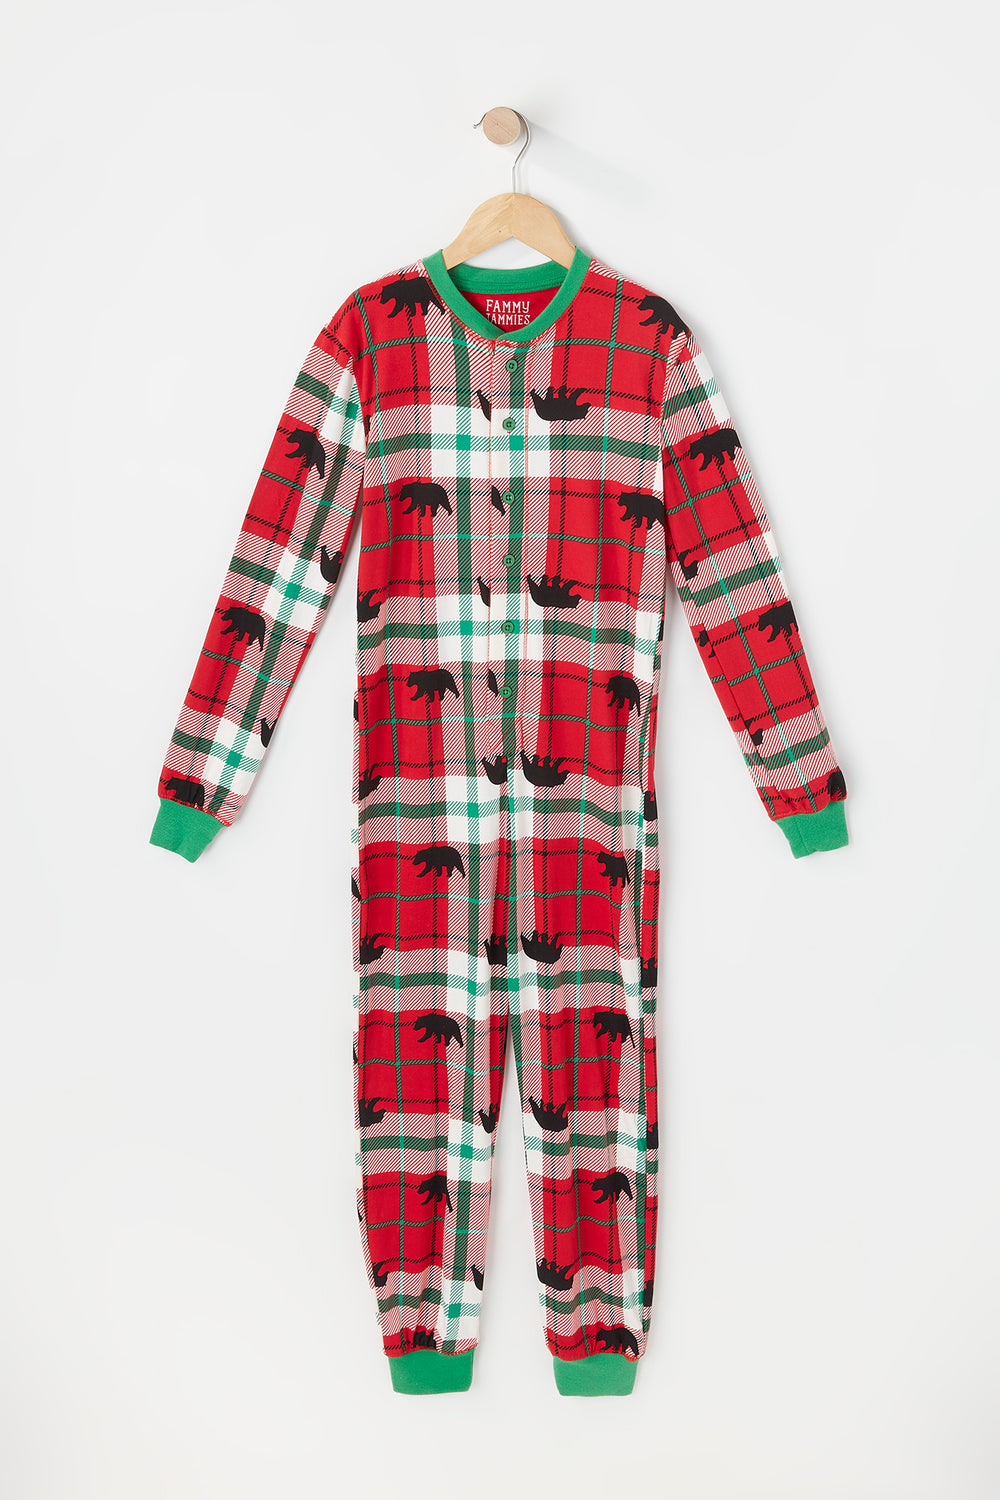 Youth Fammy Jammies Plaid Printed Have A Beary Christmas Graphic Onesie Red